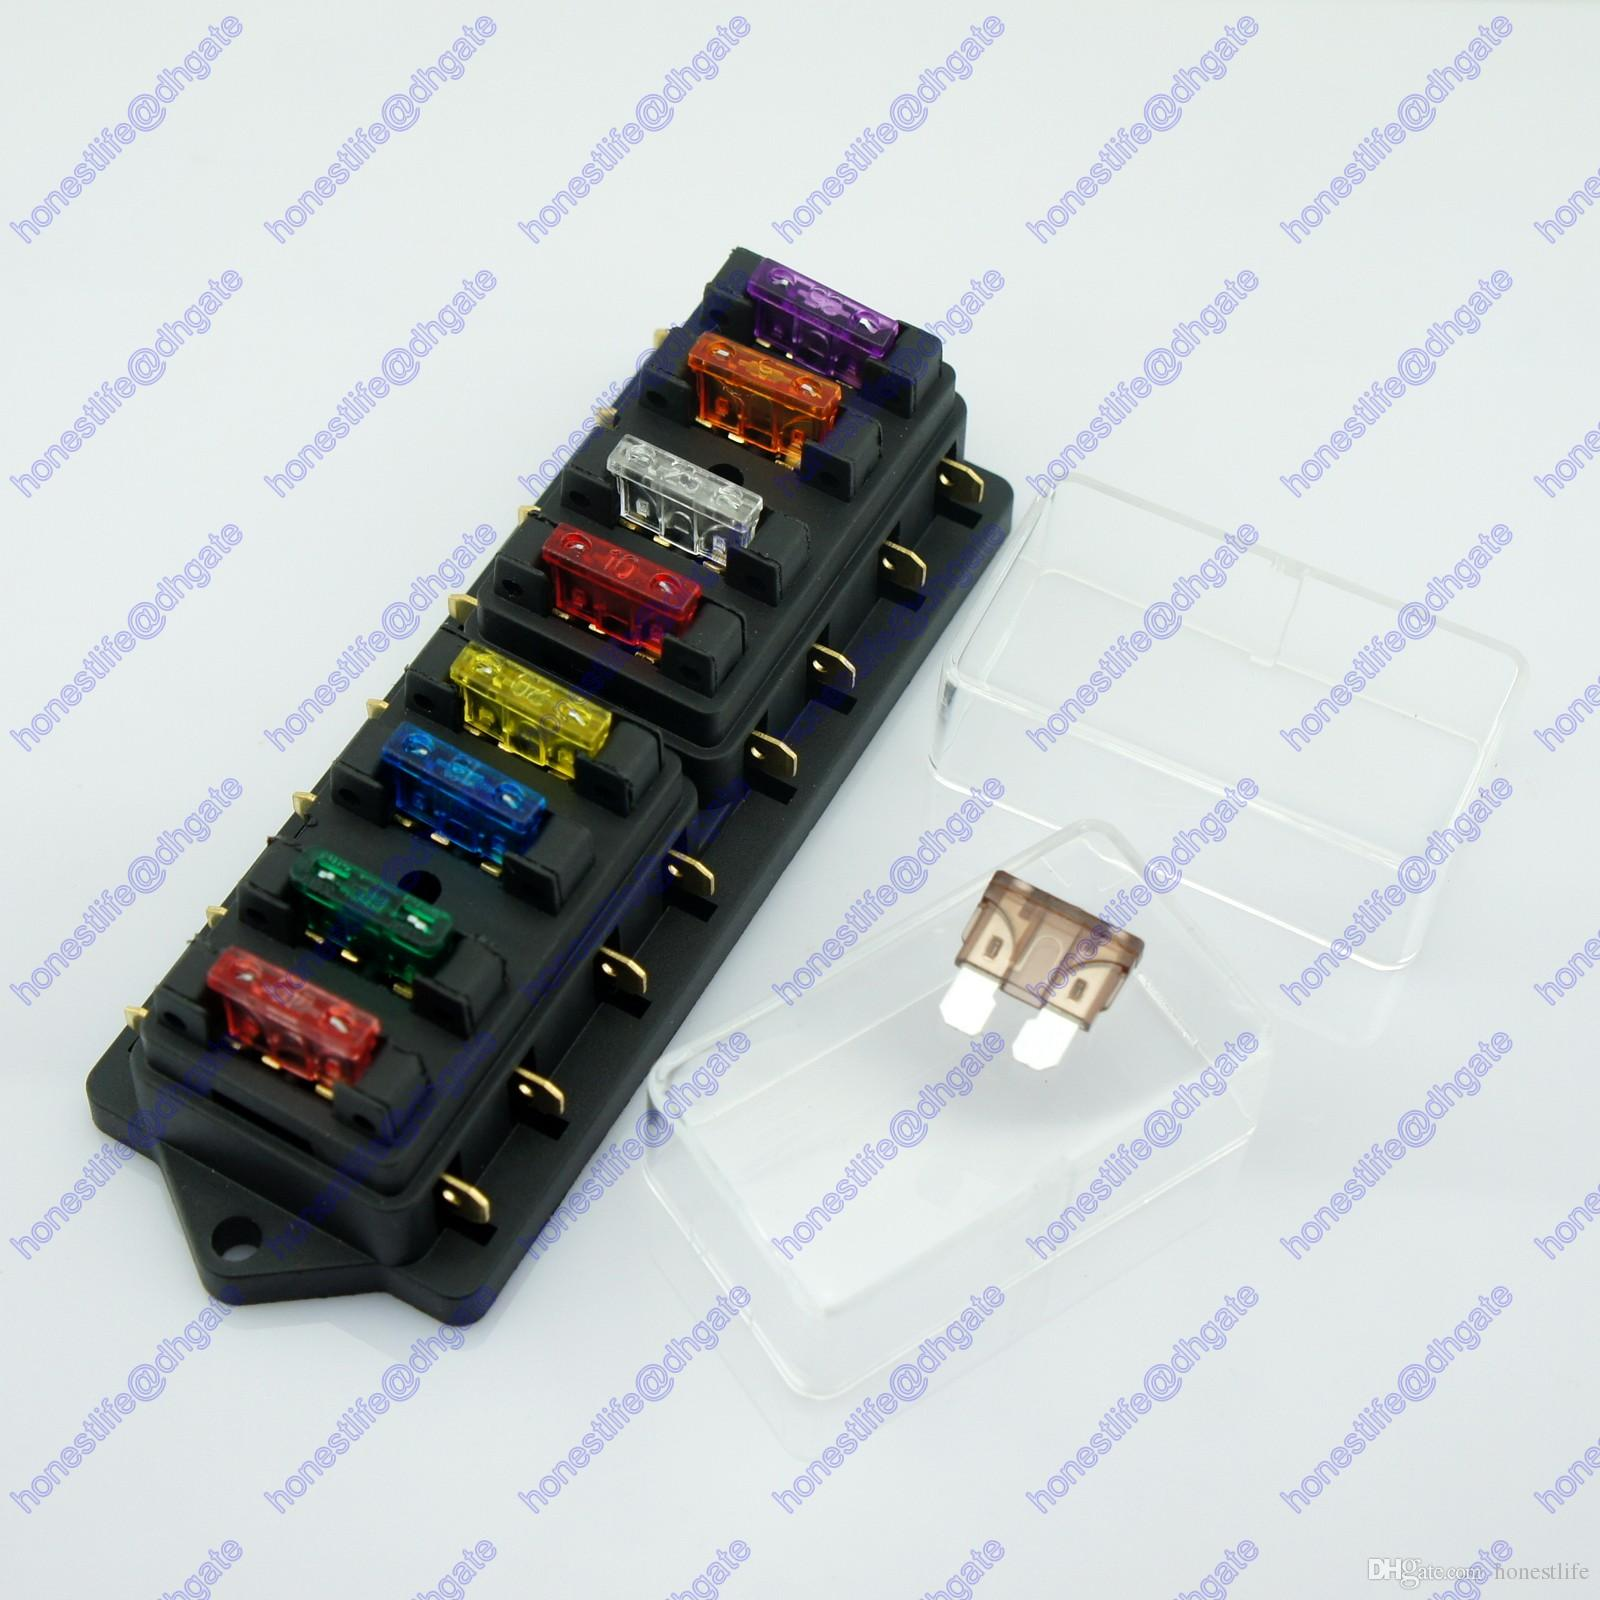 8 way atu standard blade fuse box holder 2017 8 way atu standard blade fuse box holder 12v 24v car truck rv rv fuse box at crackthecode.co